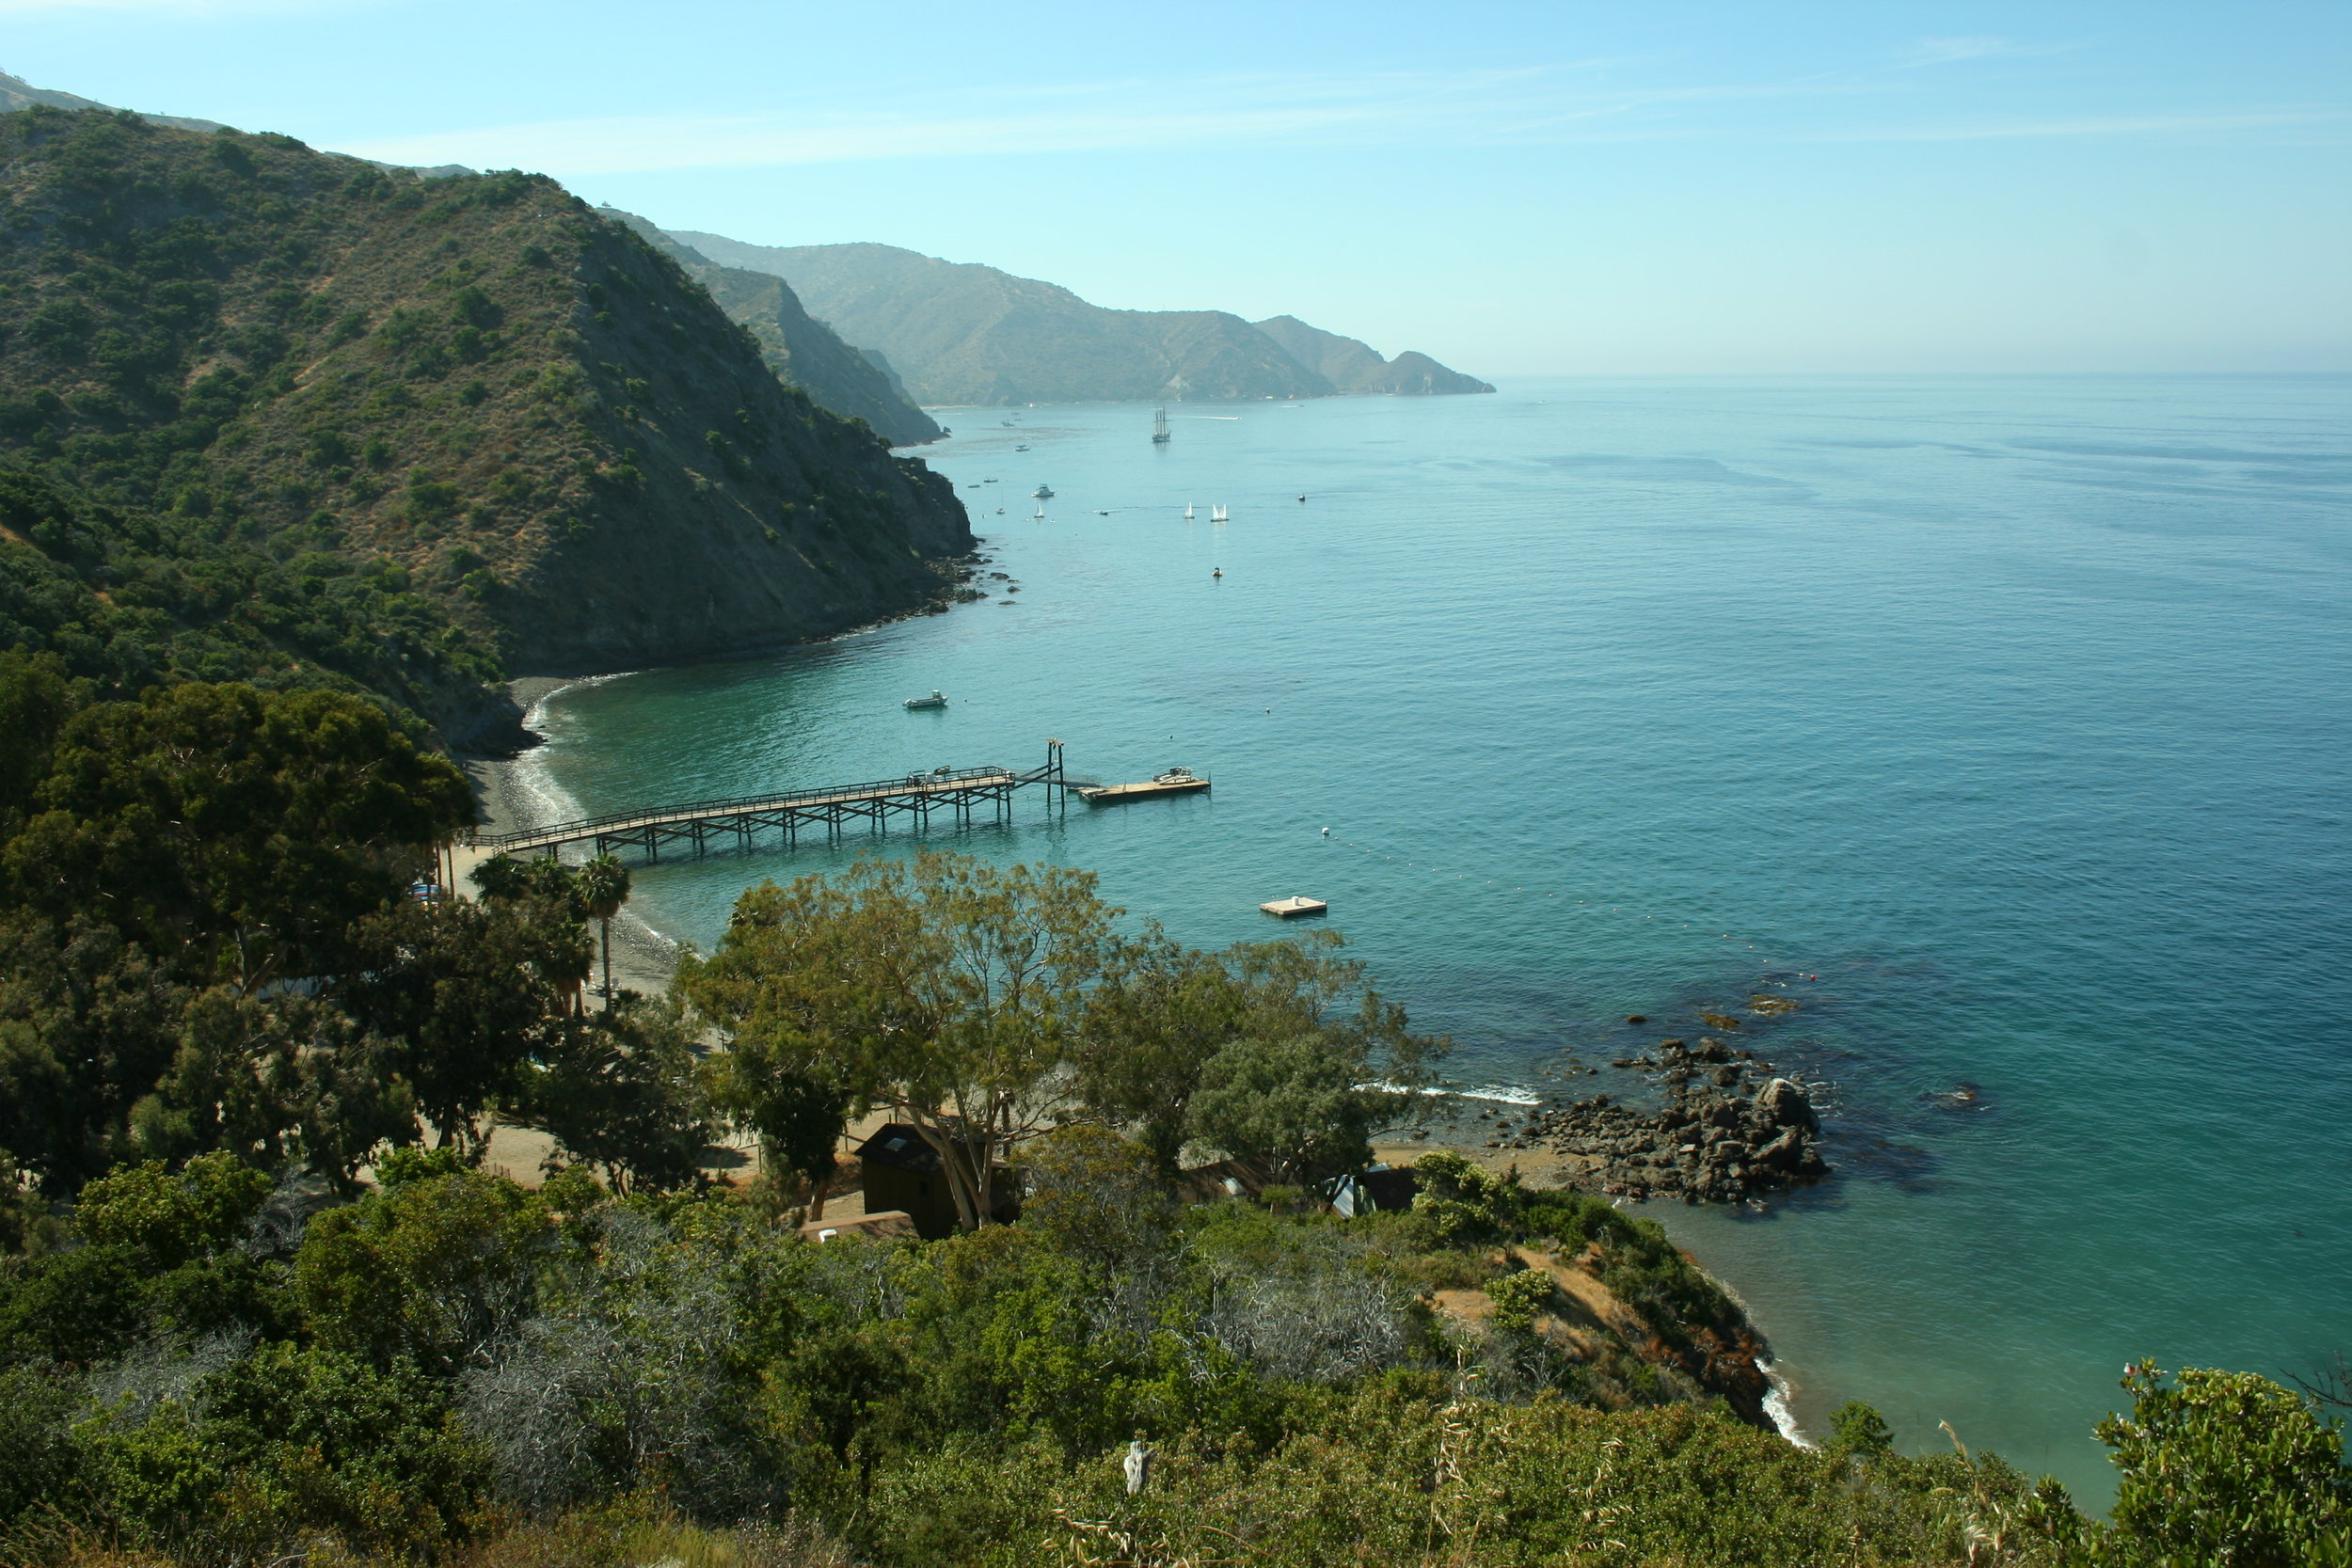 FAMILY CAMP    CAMPUS BY THE SEA, CATALINA JUNE 23 - 29, 2019 & JUNE 30 - JULY 6, 2019   Located on a secluded, private cove on wild and beautiful Santa Catalina Island close to Avalon, CA, Campus by the Sea is Southern California's Christian Camp and Conference Center with the most unique setting. Between Two Trees is partnering with CAMPUS BY THE SEA, CATALINA for two weeks of Family Camp. Curt and Rhonda with be hosting each week!